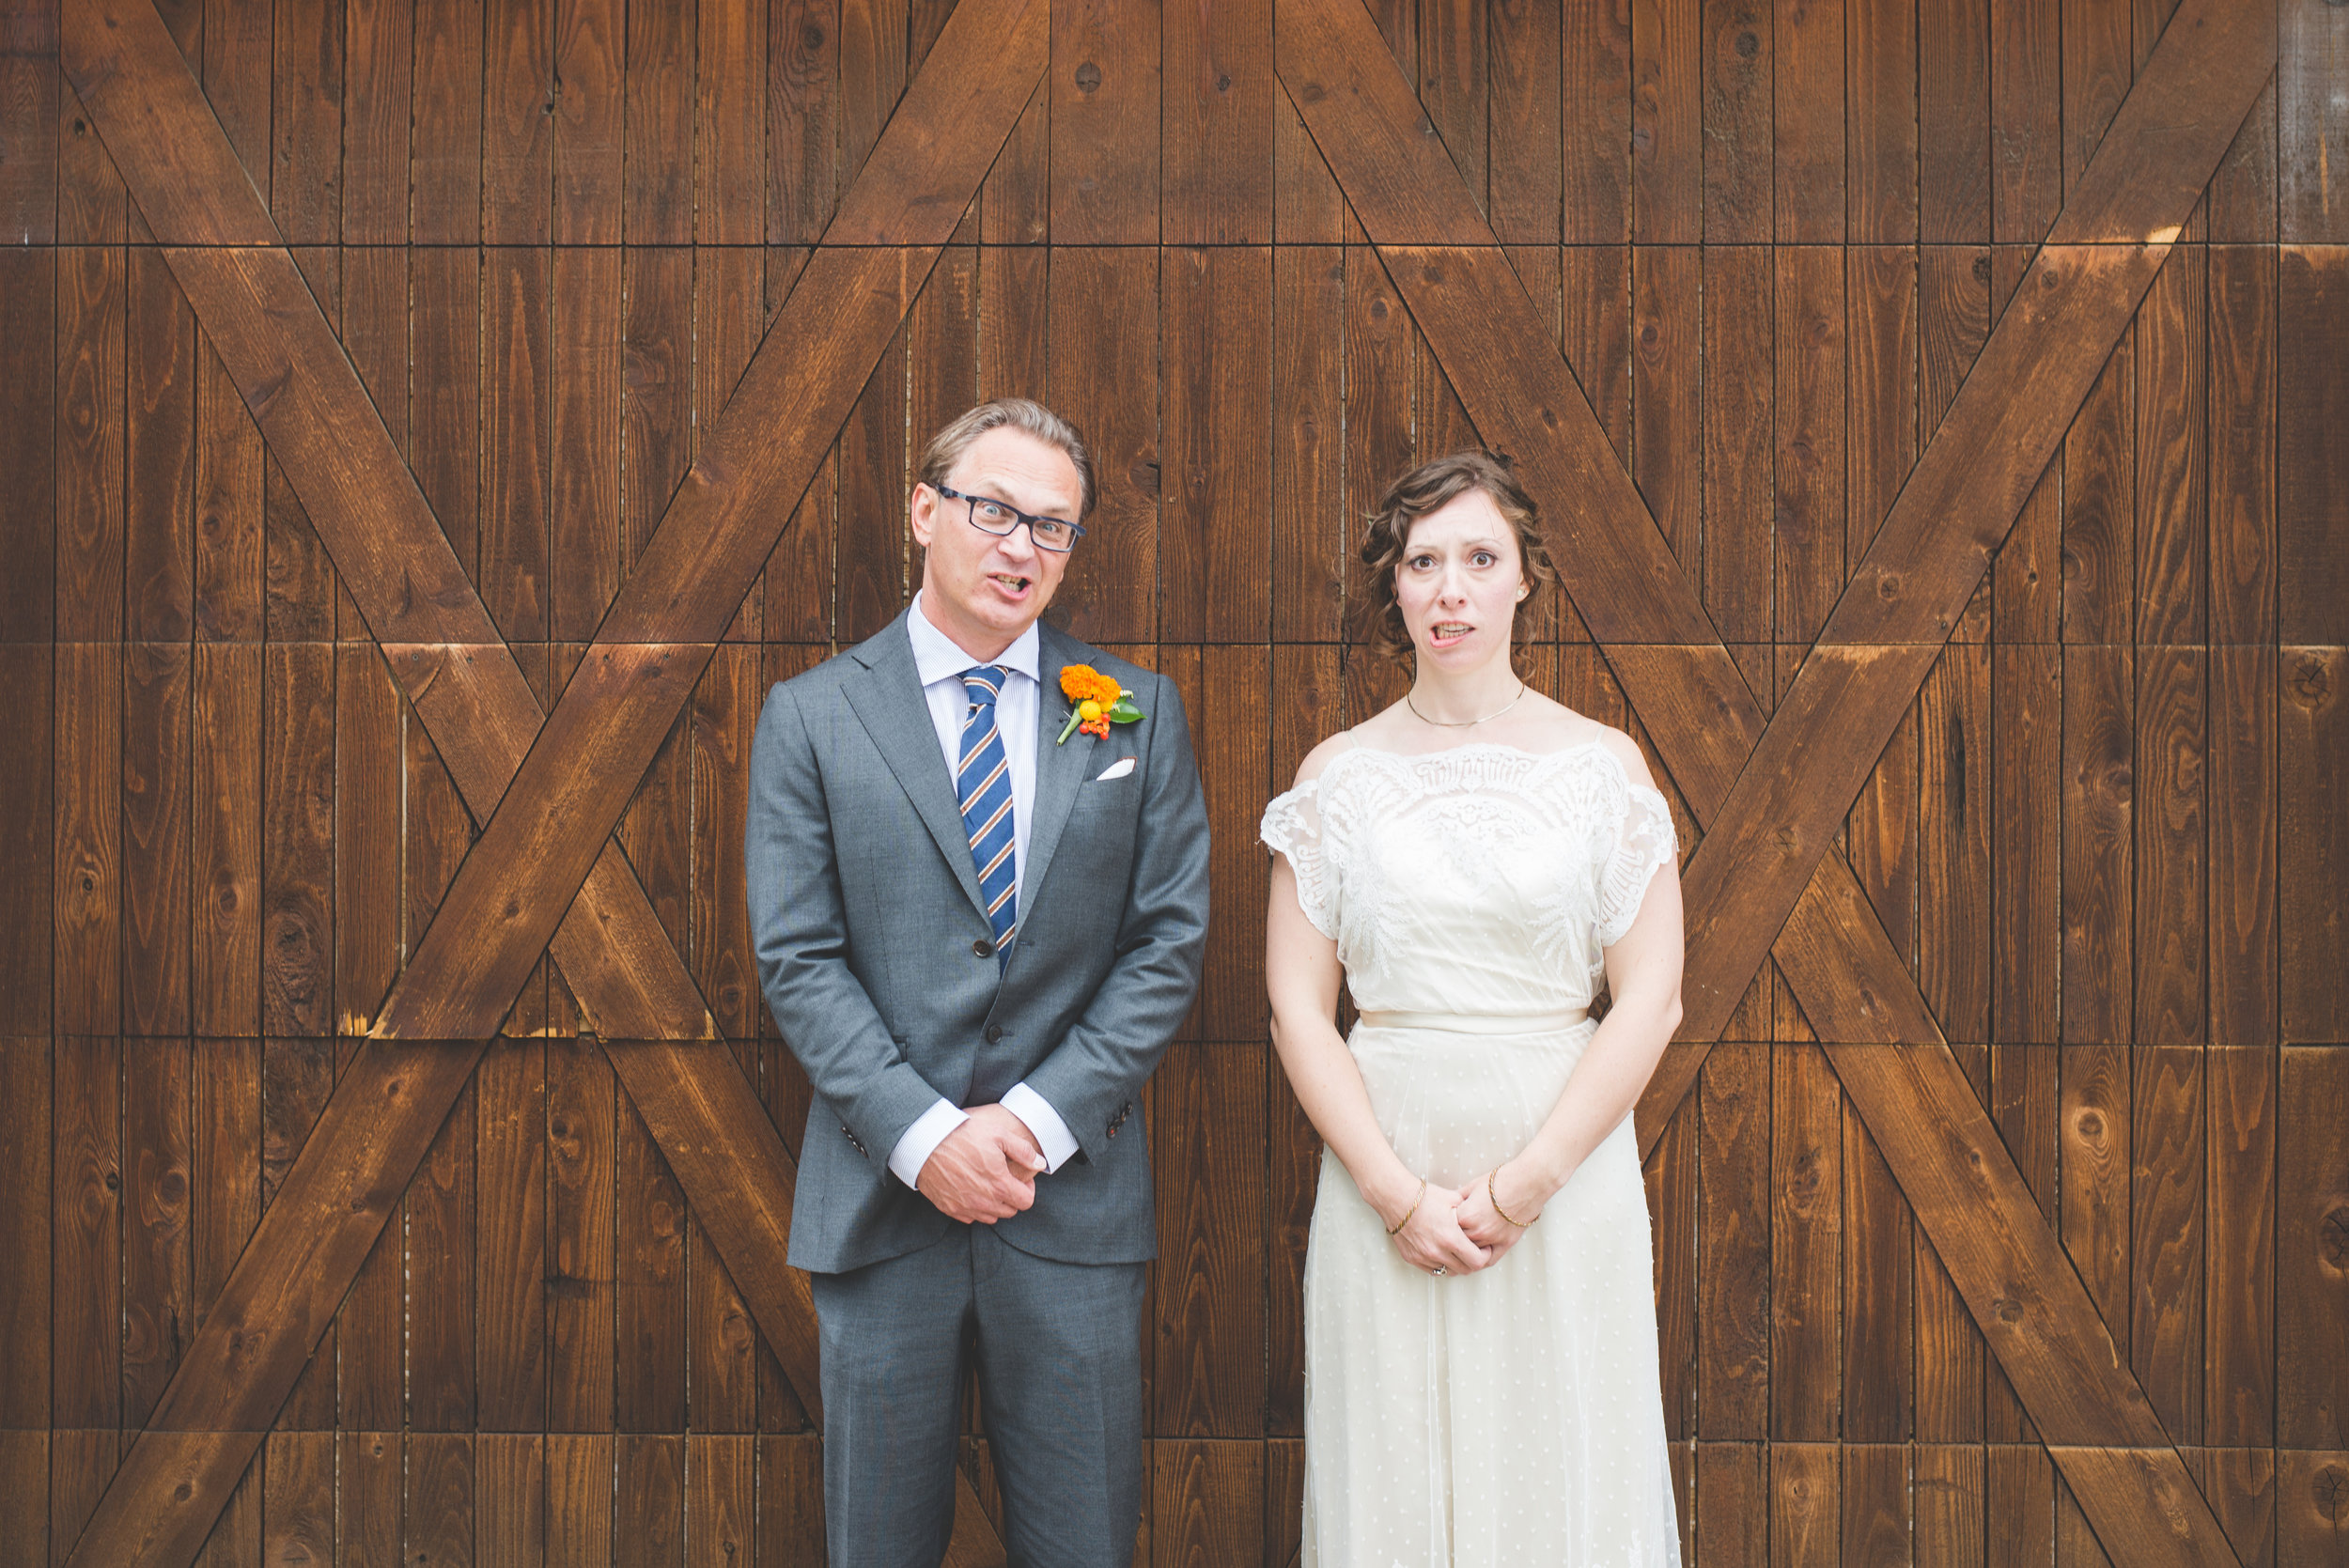 colorado bride and groom are asked to make a silly face during their photo shoot - they made the same face!